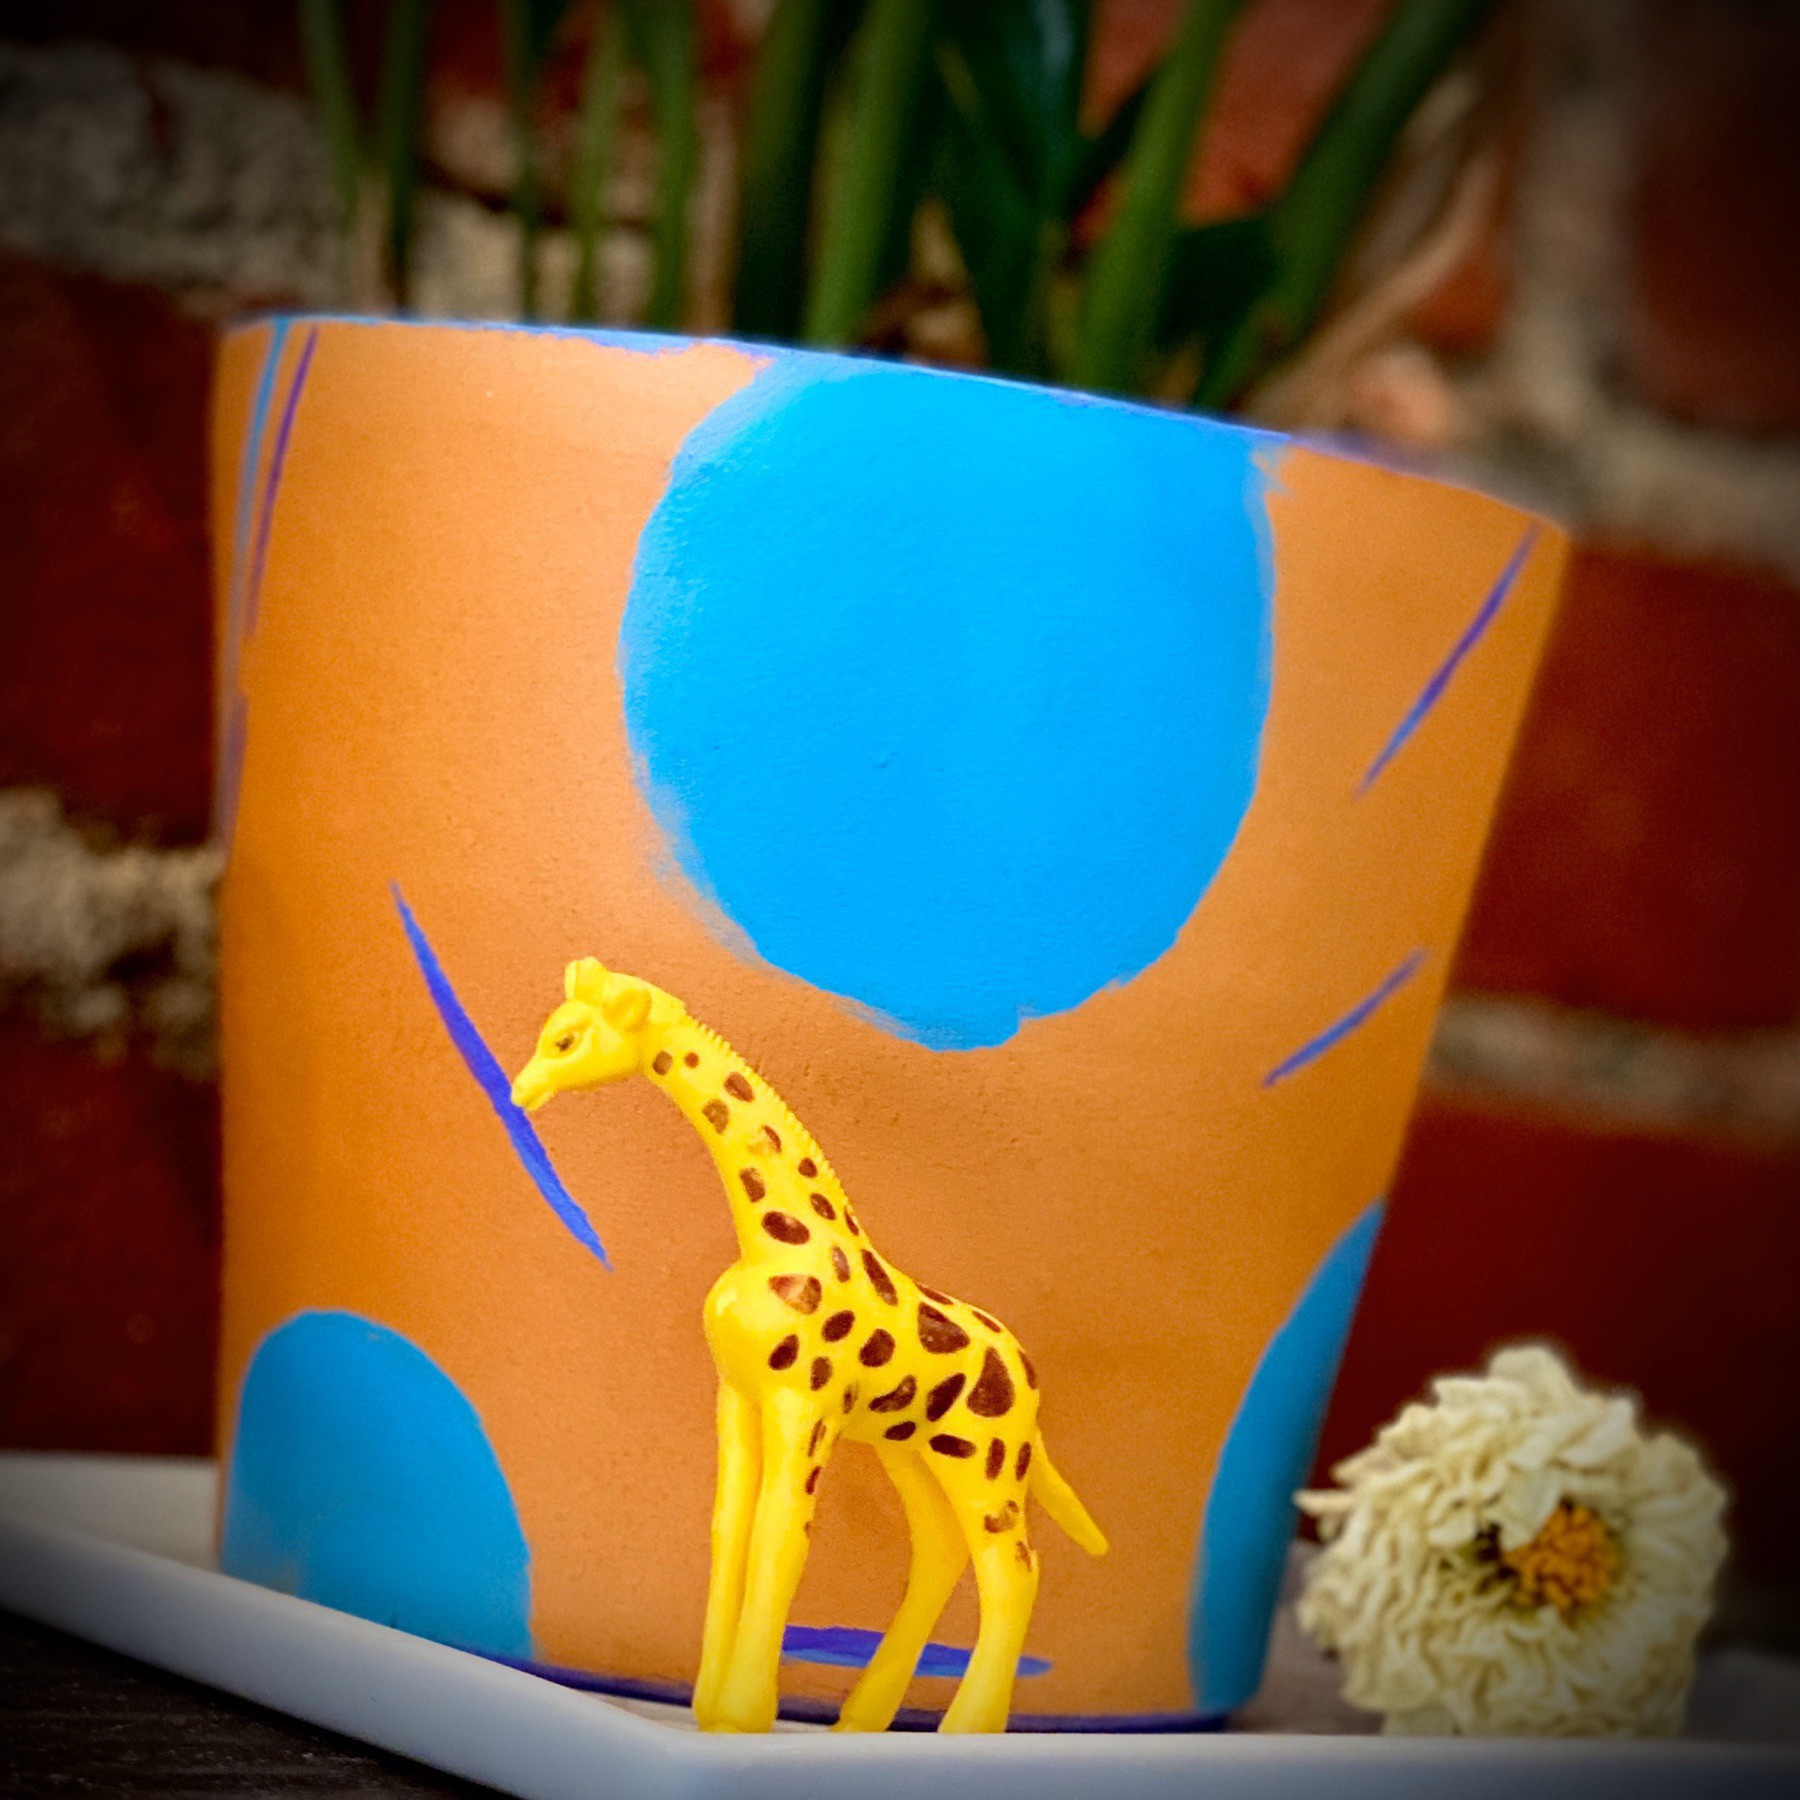 Small Giraffe figurine in front of potted plant.